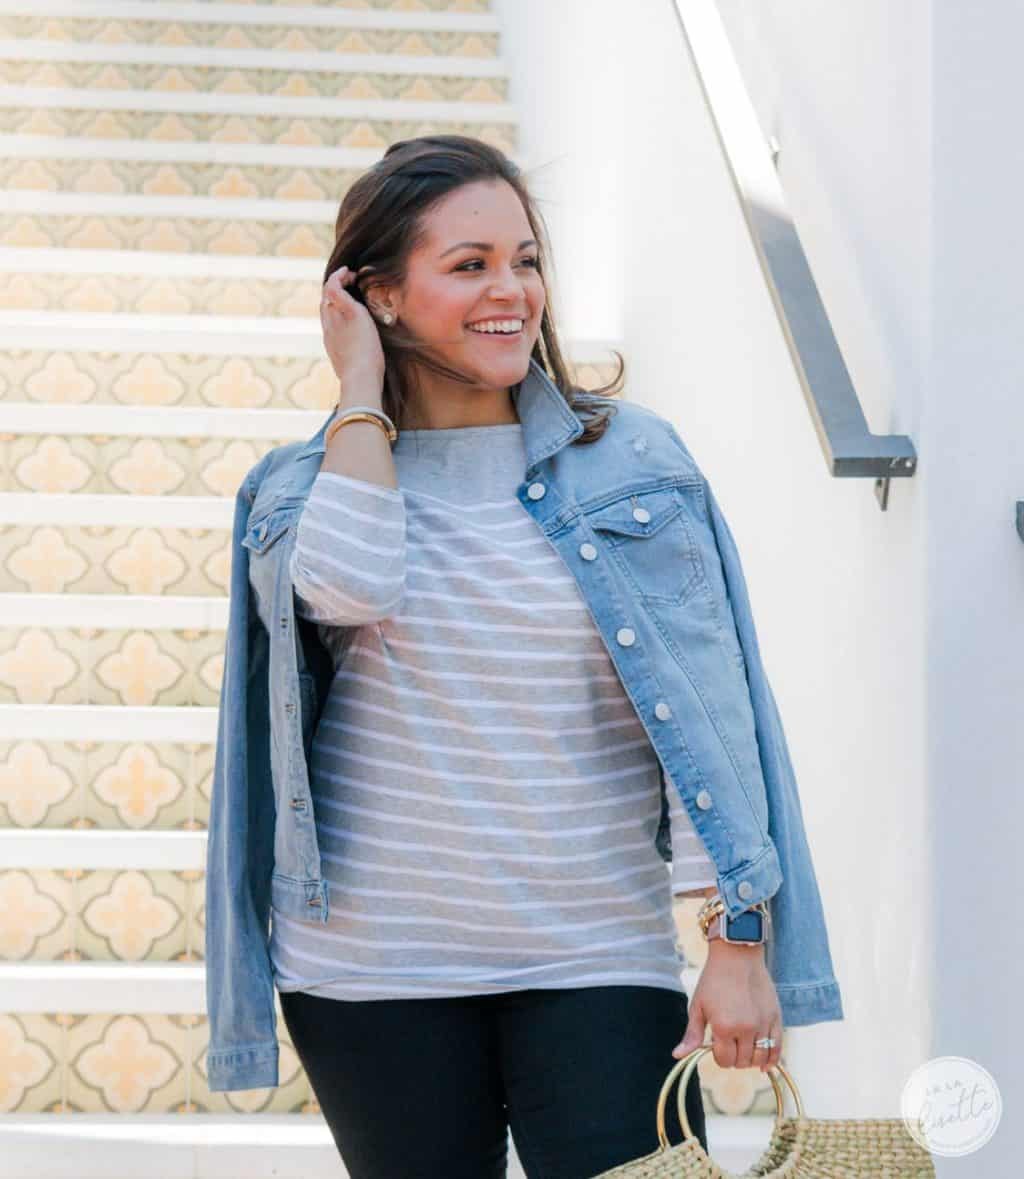 woman wearing clothes from Walmart: a jean jacket and top #WeDressAmerica #WalmartFashion https://ooh.li/fa4cfae